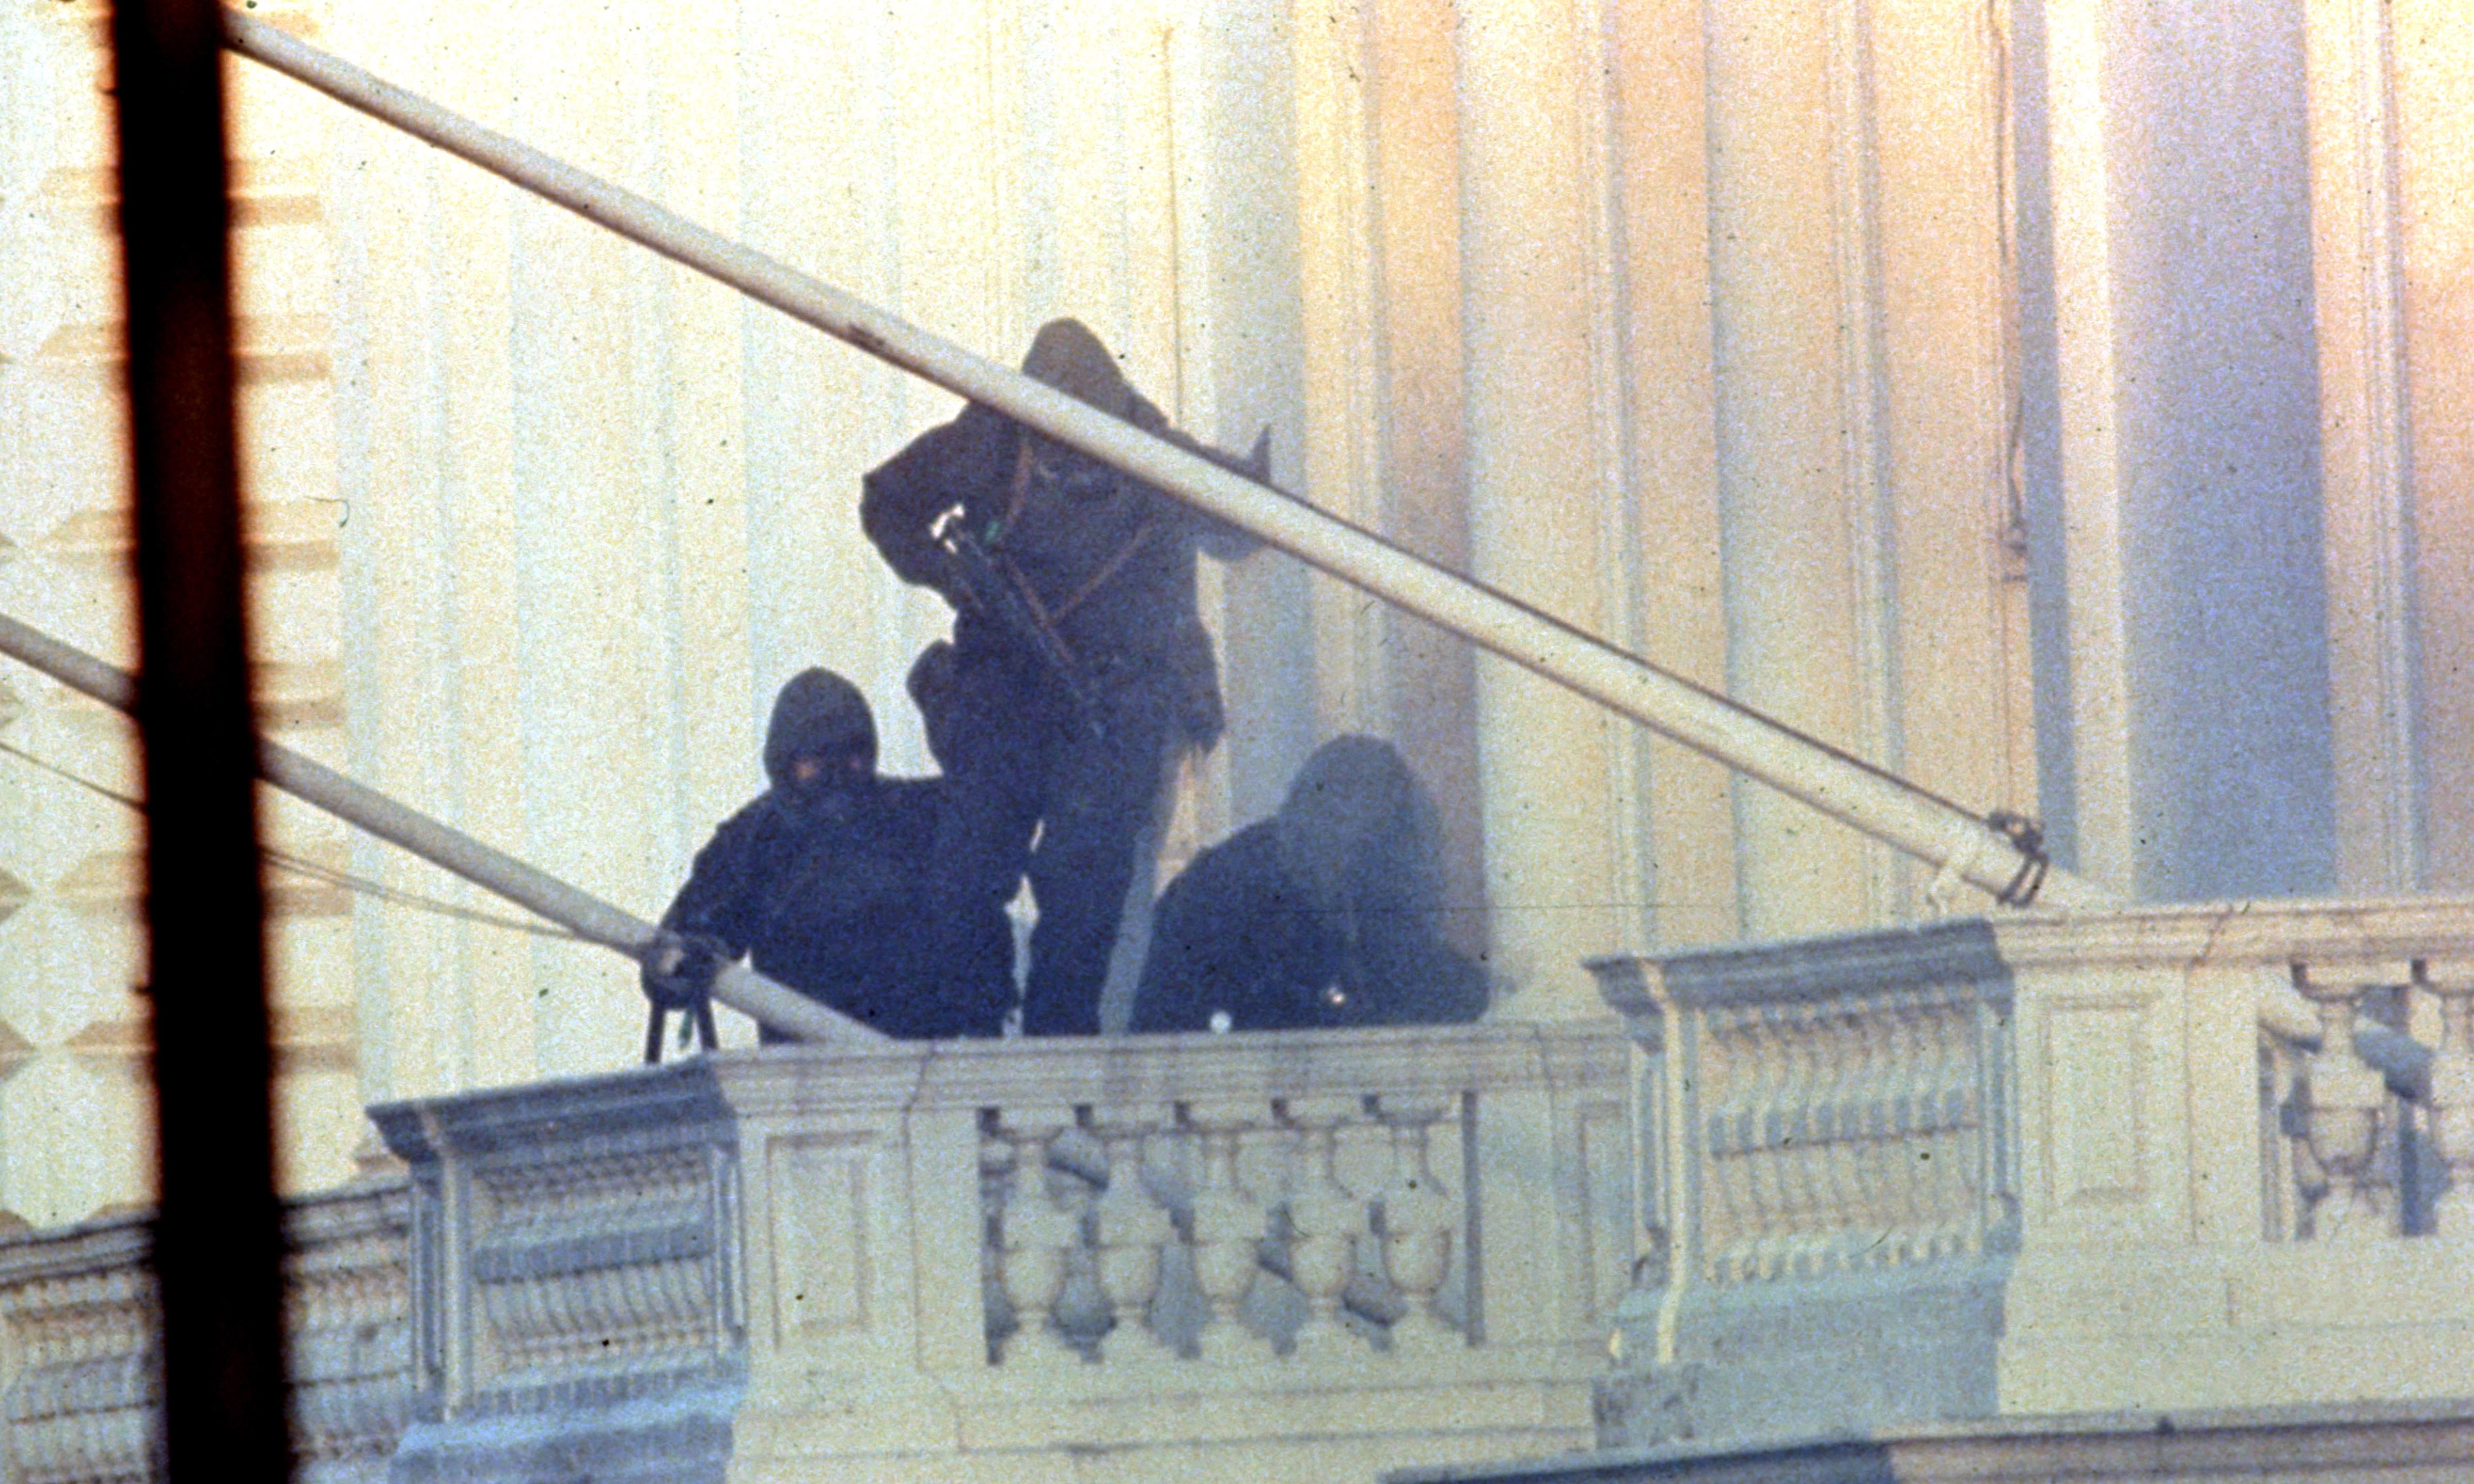 Revealed: clandestine actions of mercenaries during Thatcher years